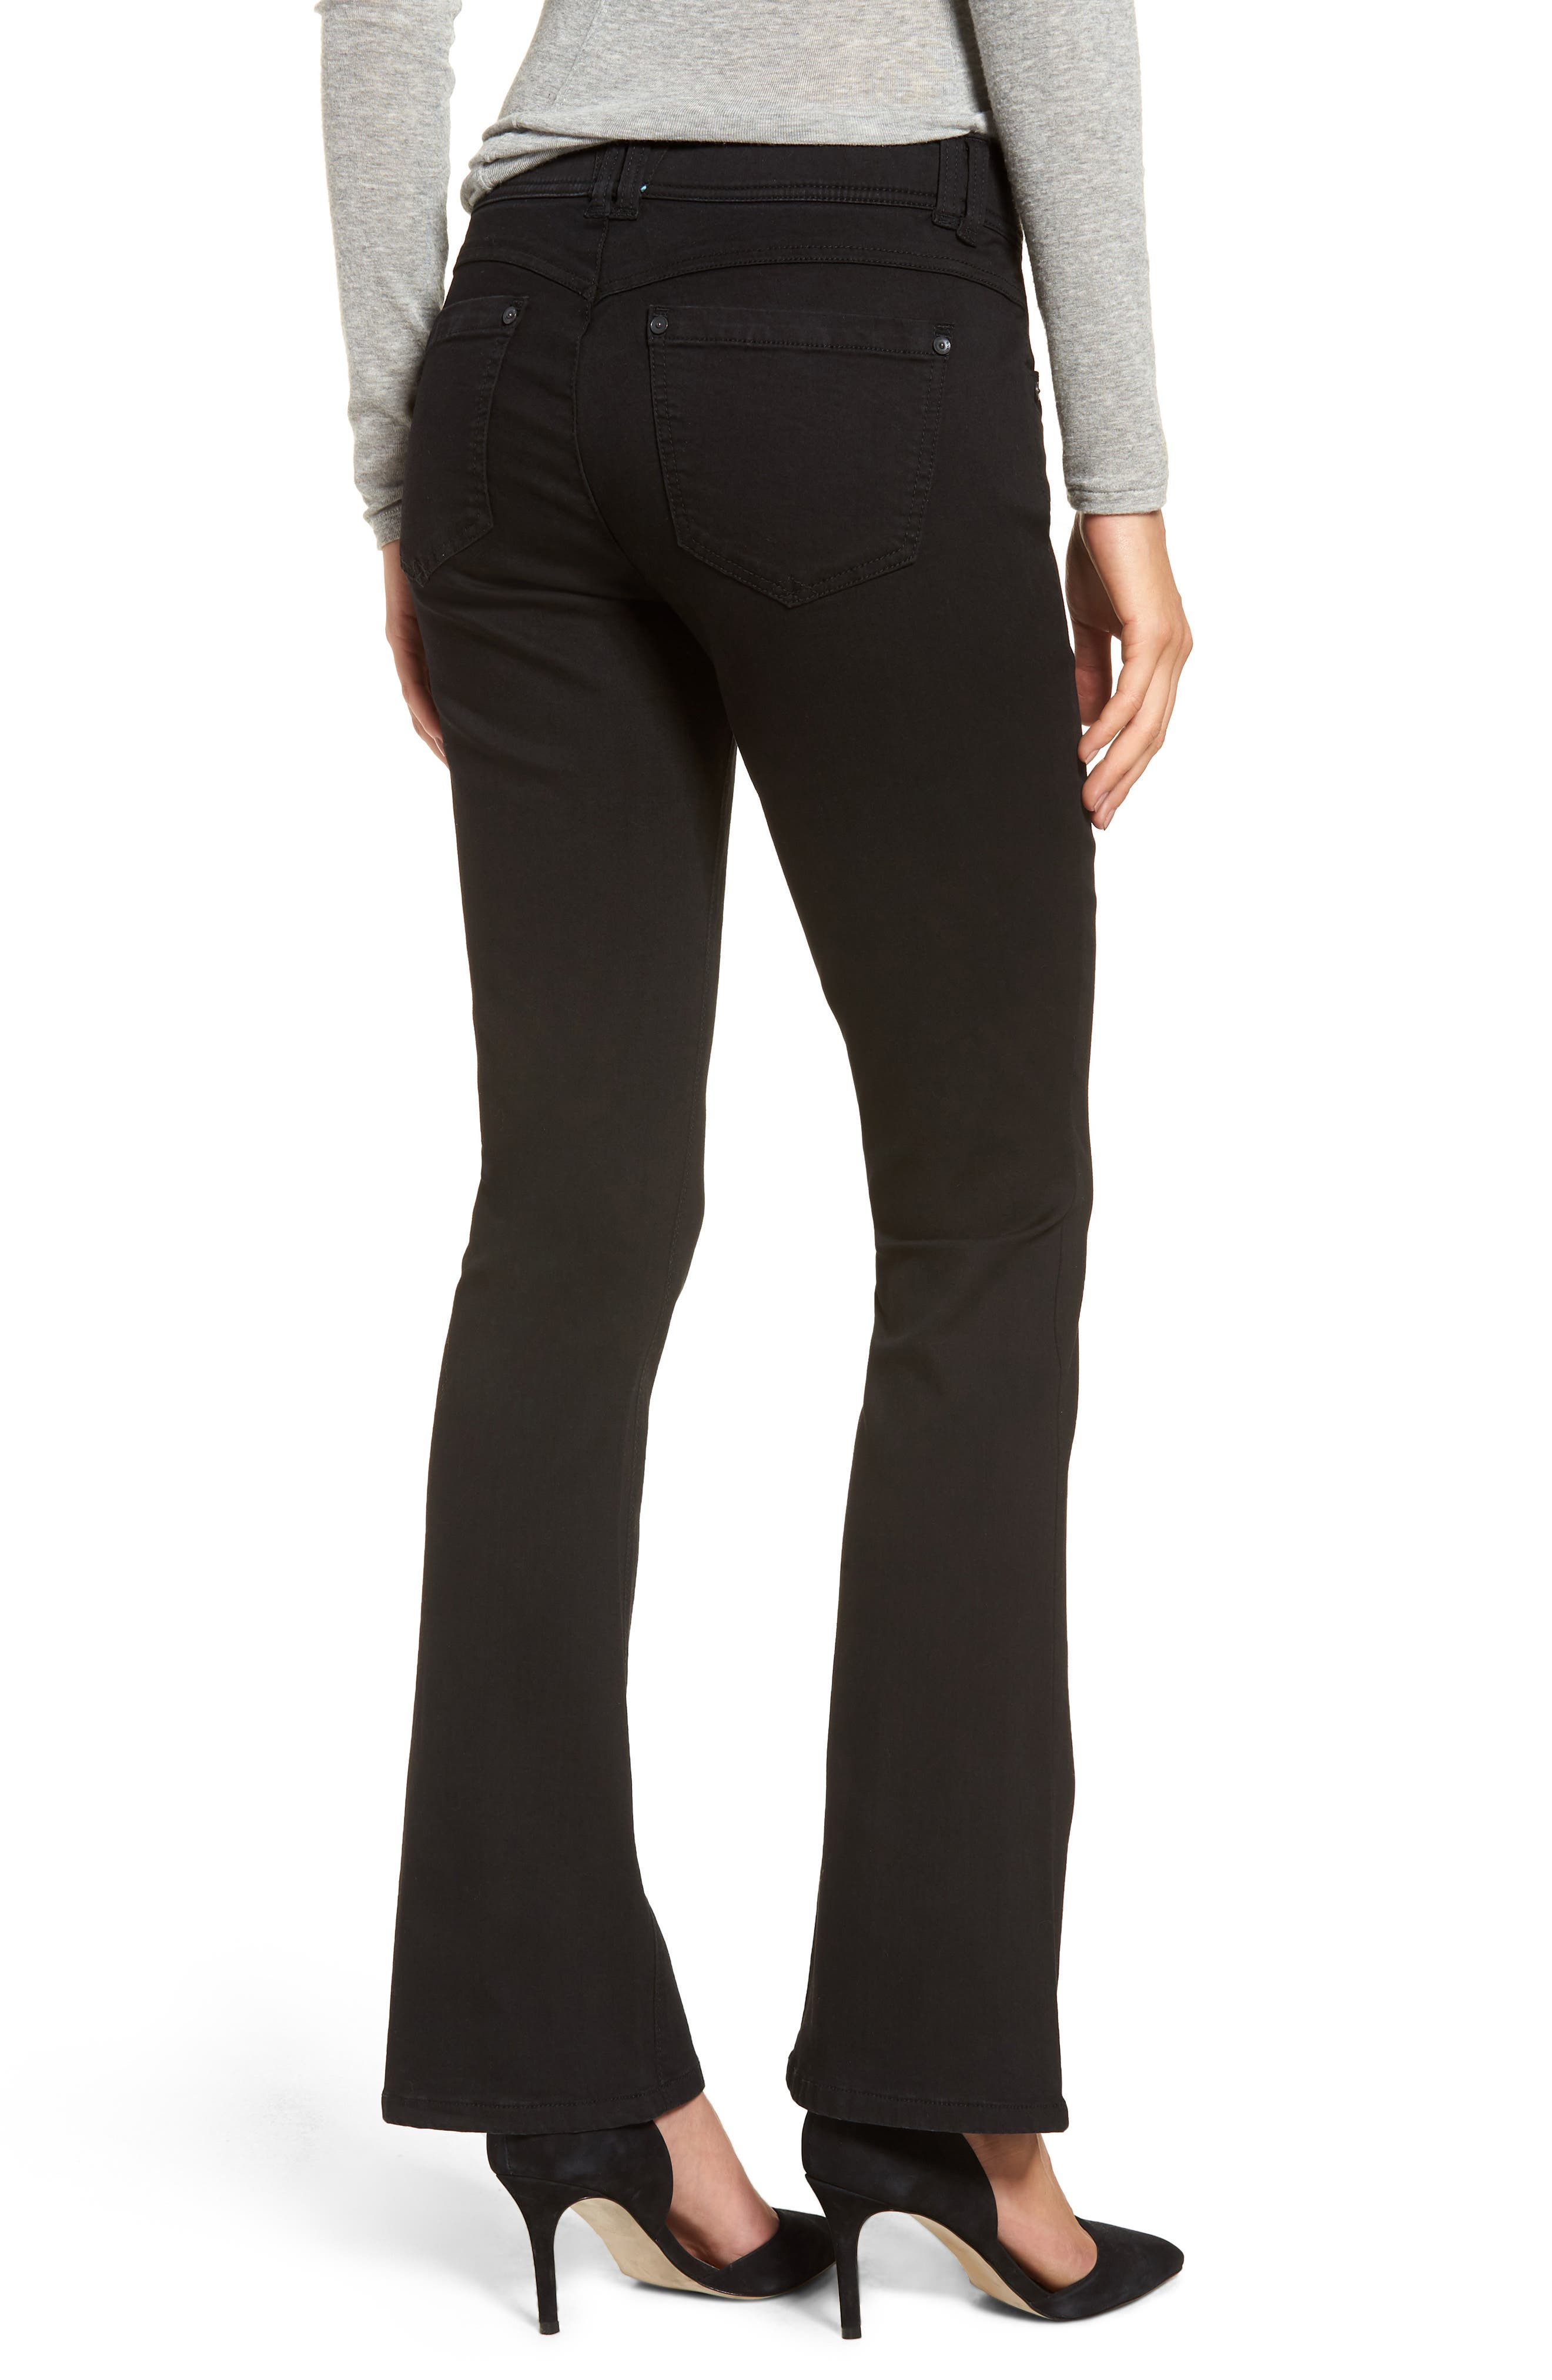 Ab-solution Itty Bitty Bootcut Jeans,                             Alternate thumbnail 2, color,                             Black